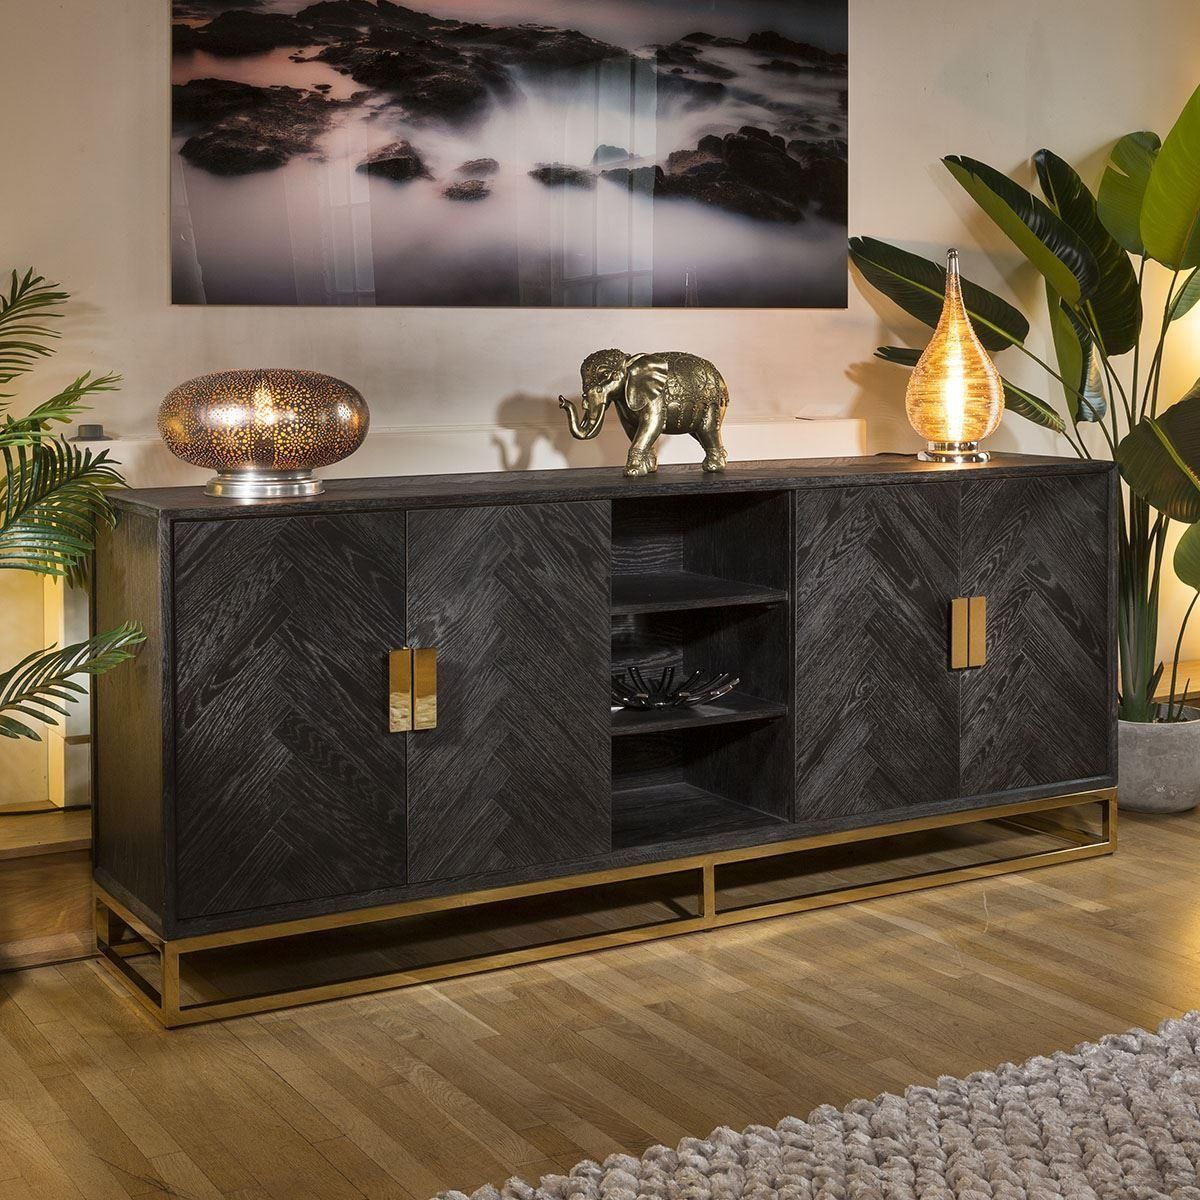 Pin By Herry Tan On Deco Maison Dining Room Buffet Table Modern Buffets And Sideboards Luxury Sideboard